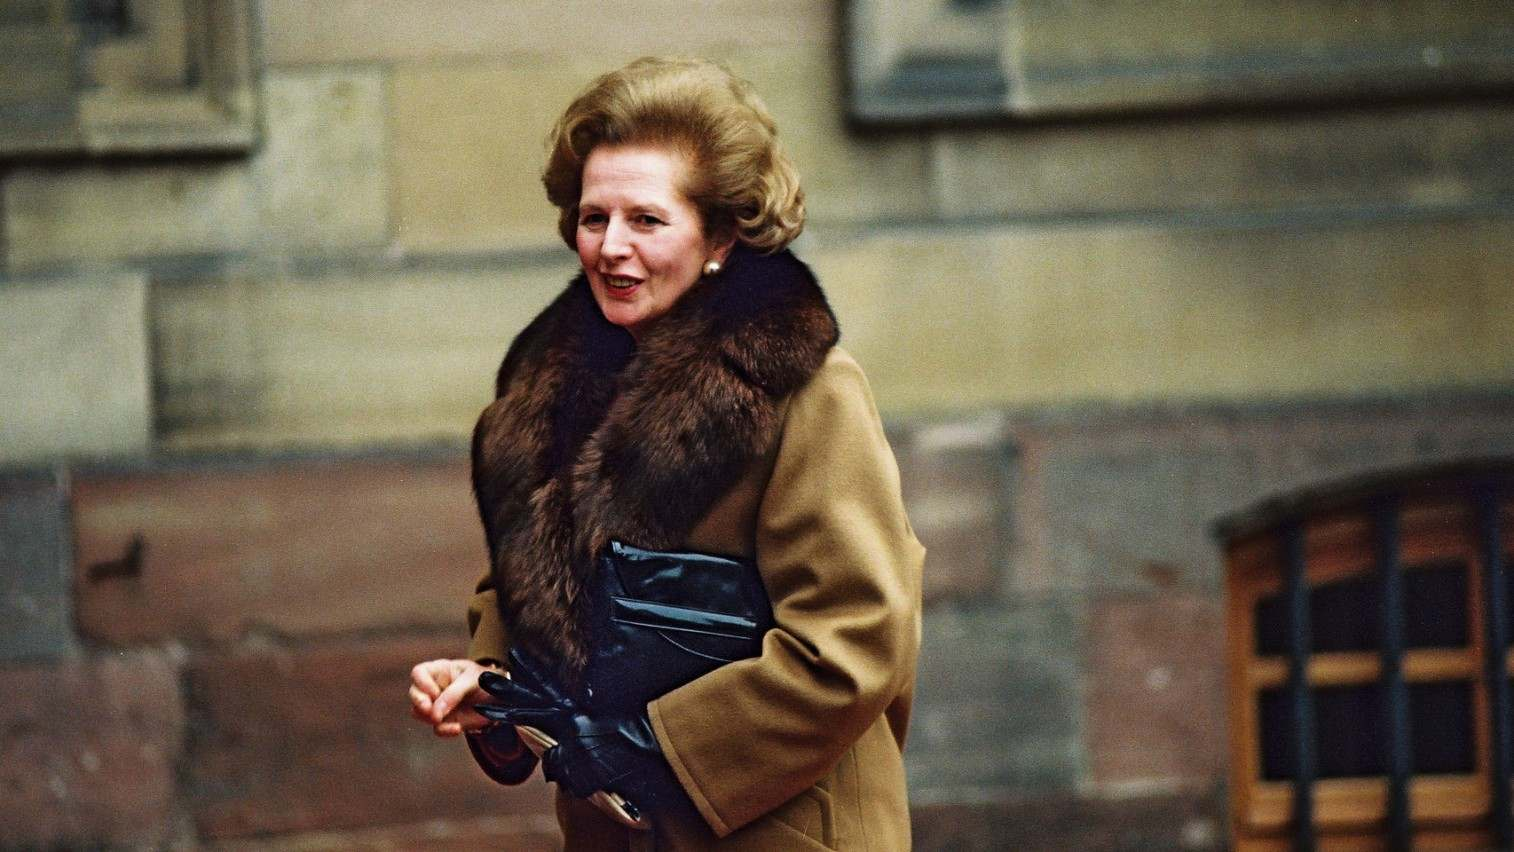 The iron Lady 4